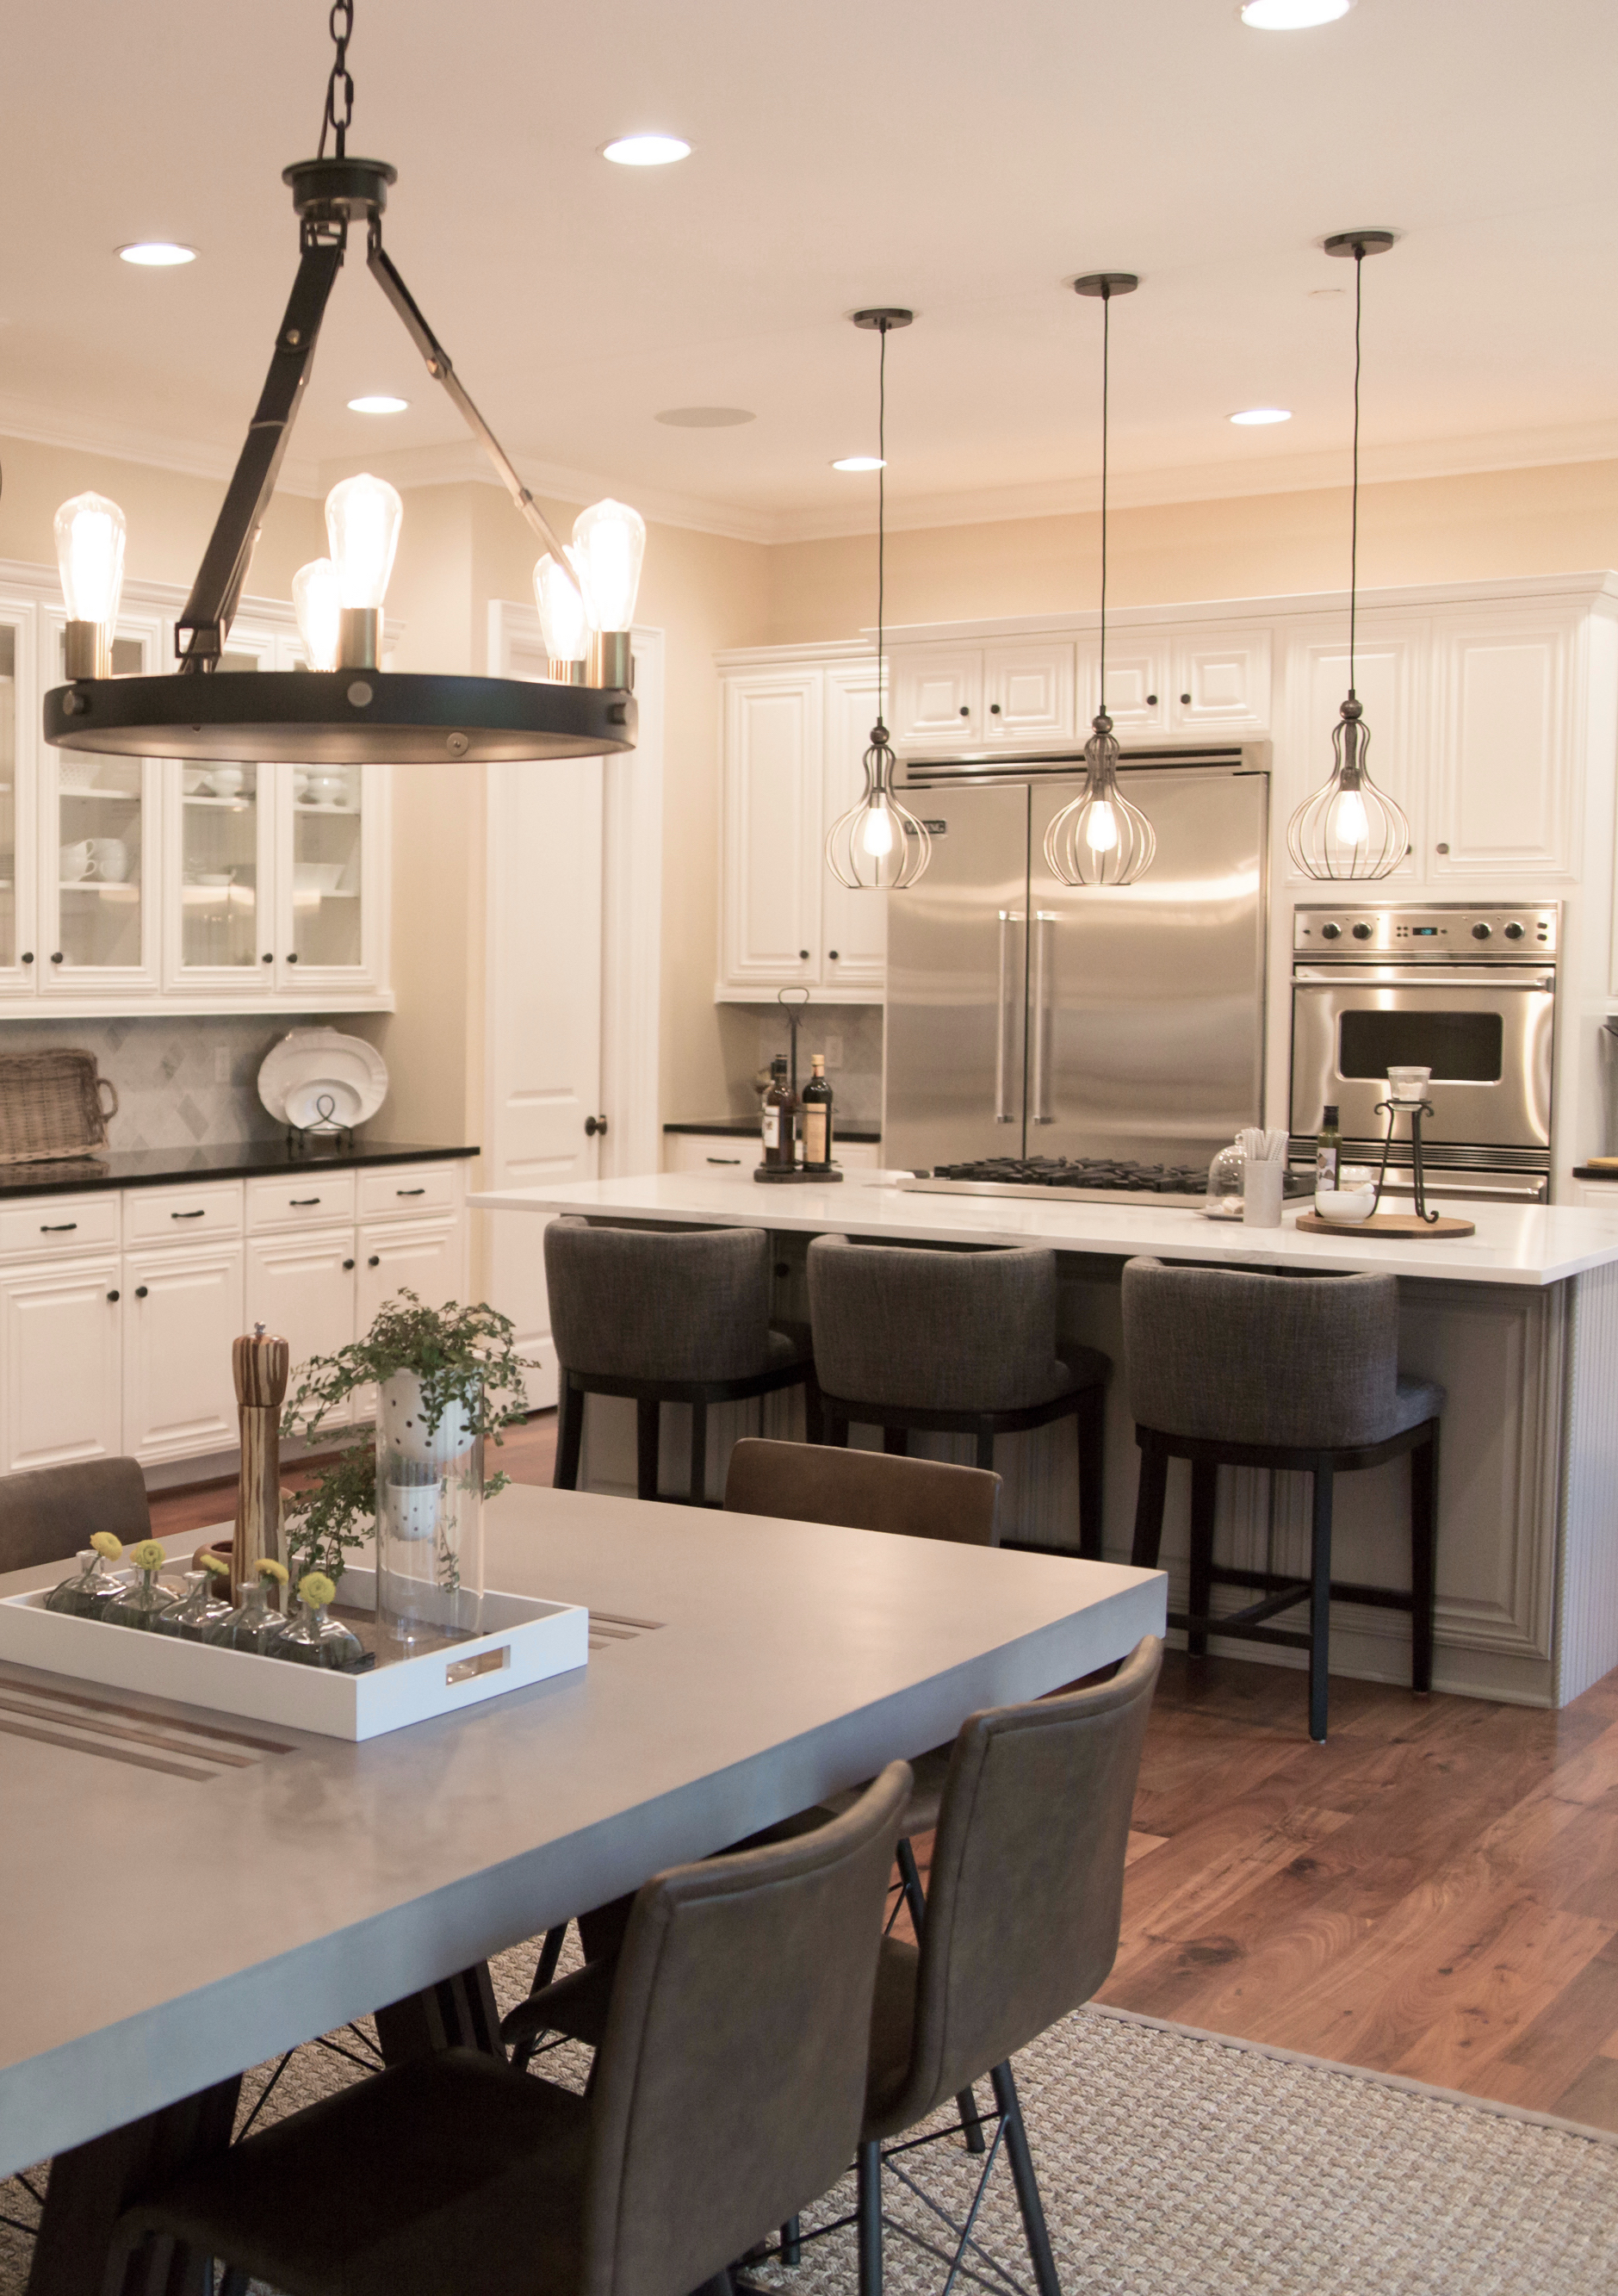 @kamigrayinteriors's cover photo for 'Kitchen and Great Room Makeover - Kami Gray Interior Design'